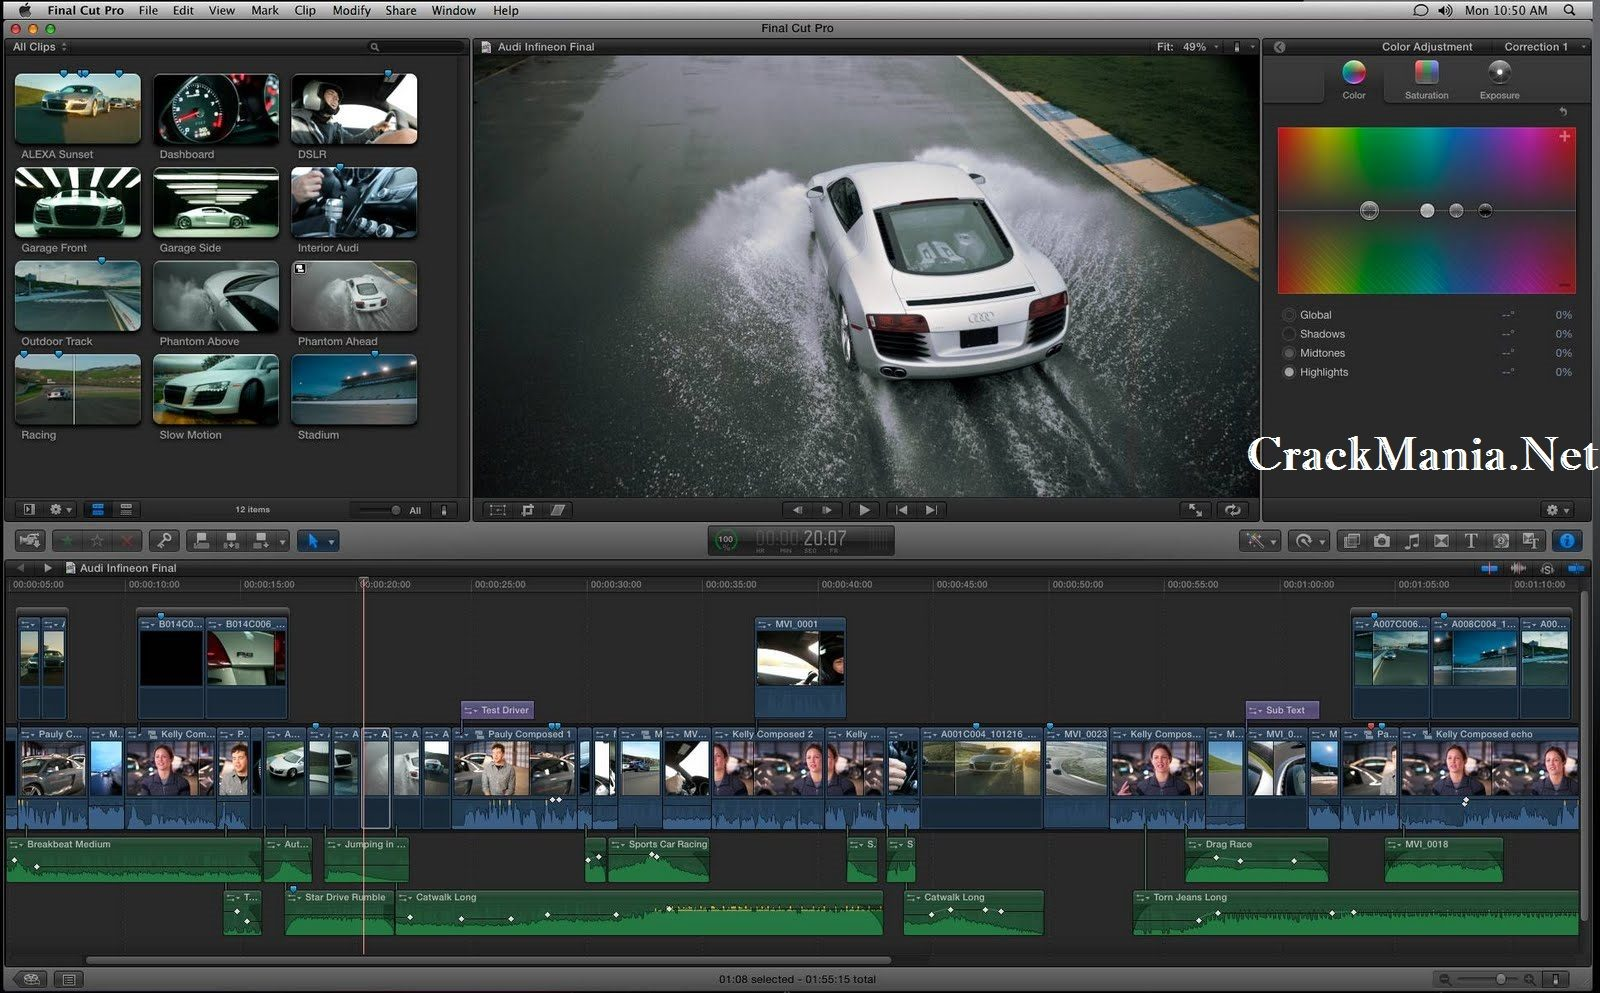 apple-final-cut-pro-x-cracked-for-mac-windows-full-free-download-7223650